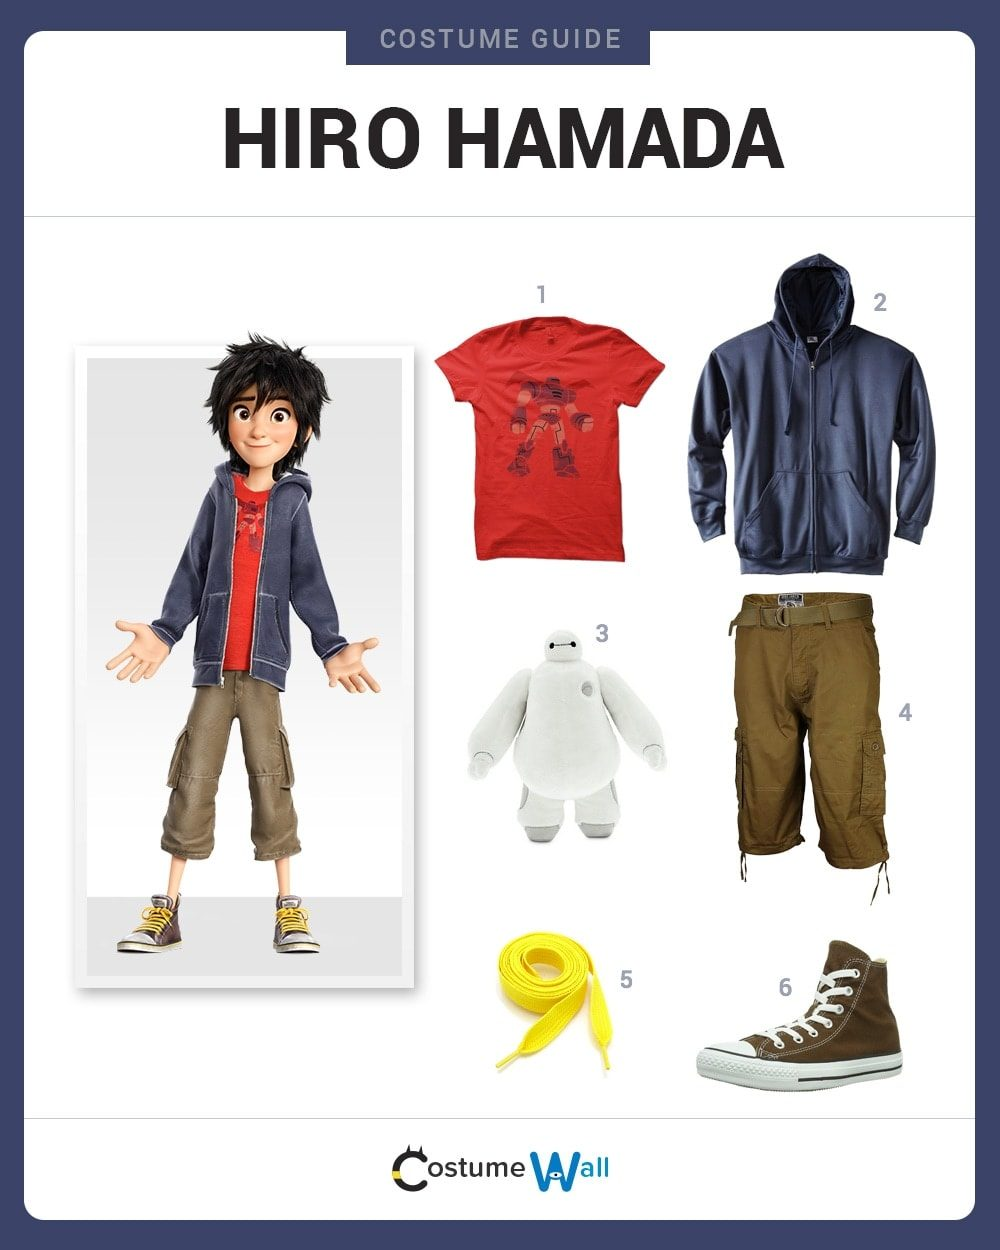 Big Hero 6 Halloween Costume And Cosplay Guides Costume Wall